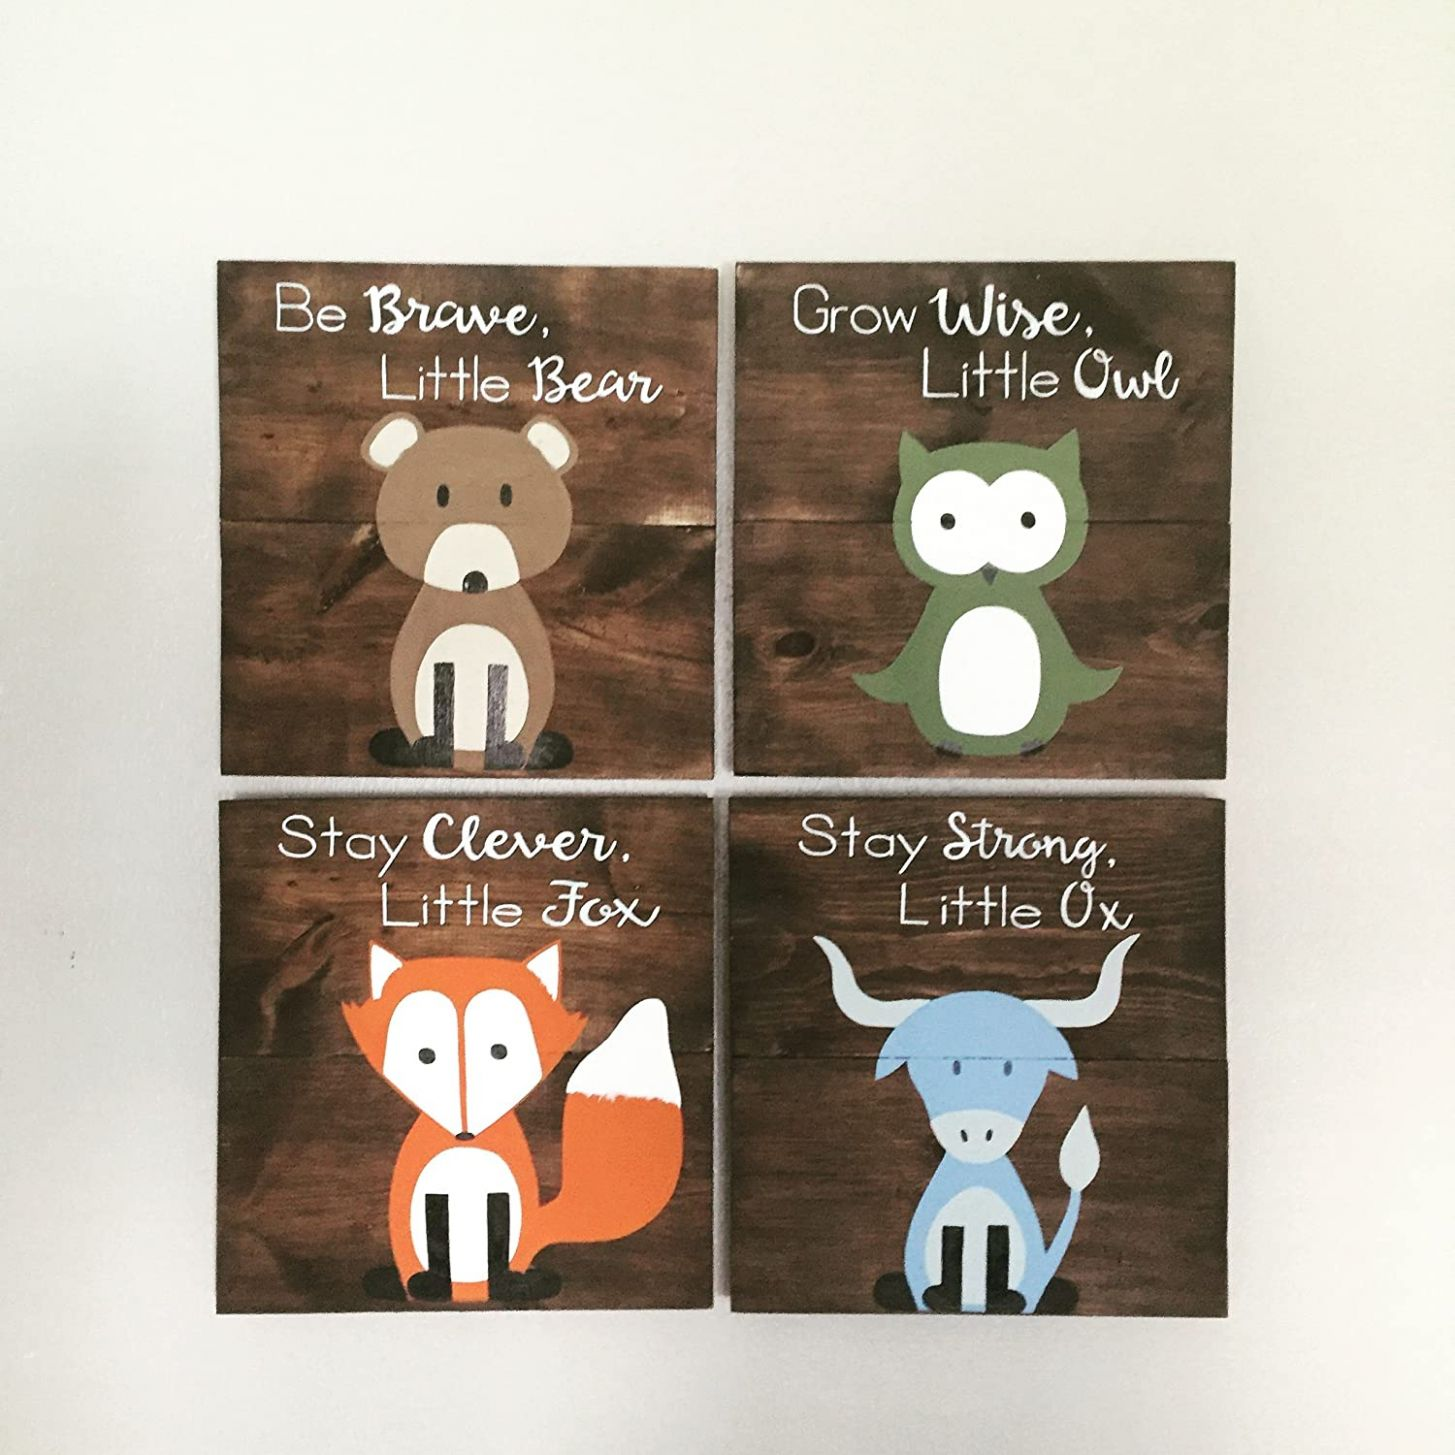 Amazon.com: 11x11 Set of 11 Woodland Animal Nursery Signs Nursery ..